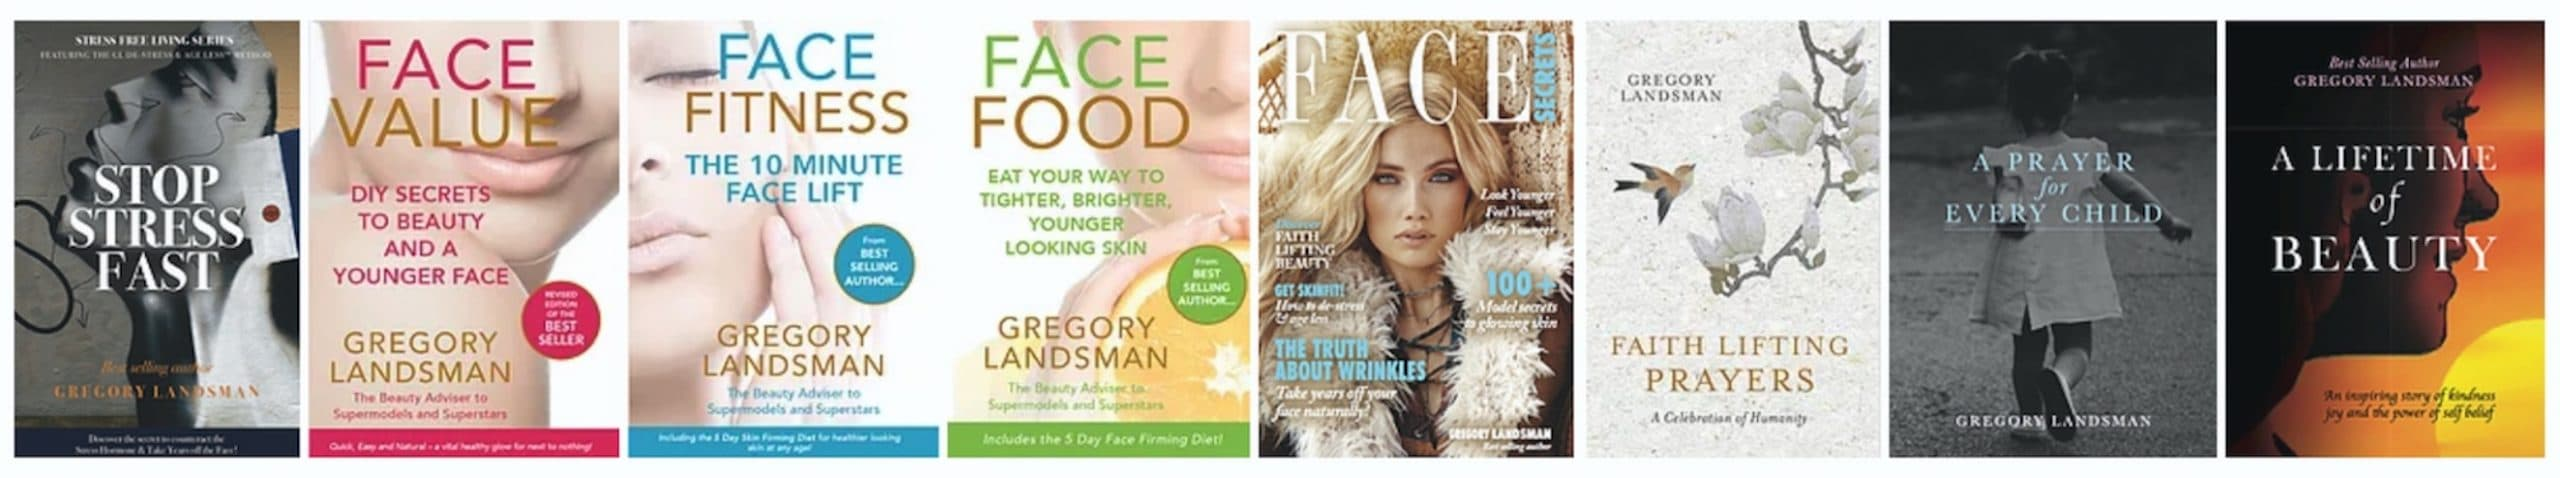 Gregory Landsman books to look younger and feel good in your skin